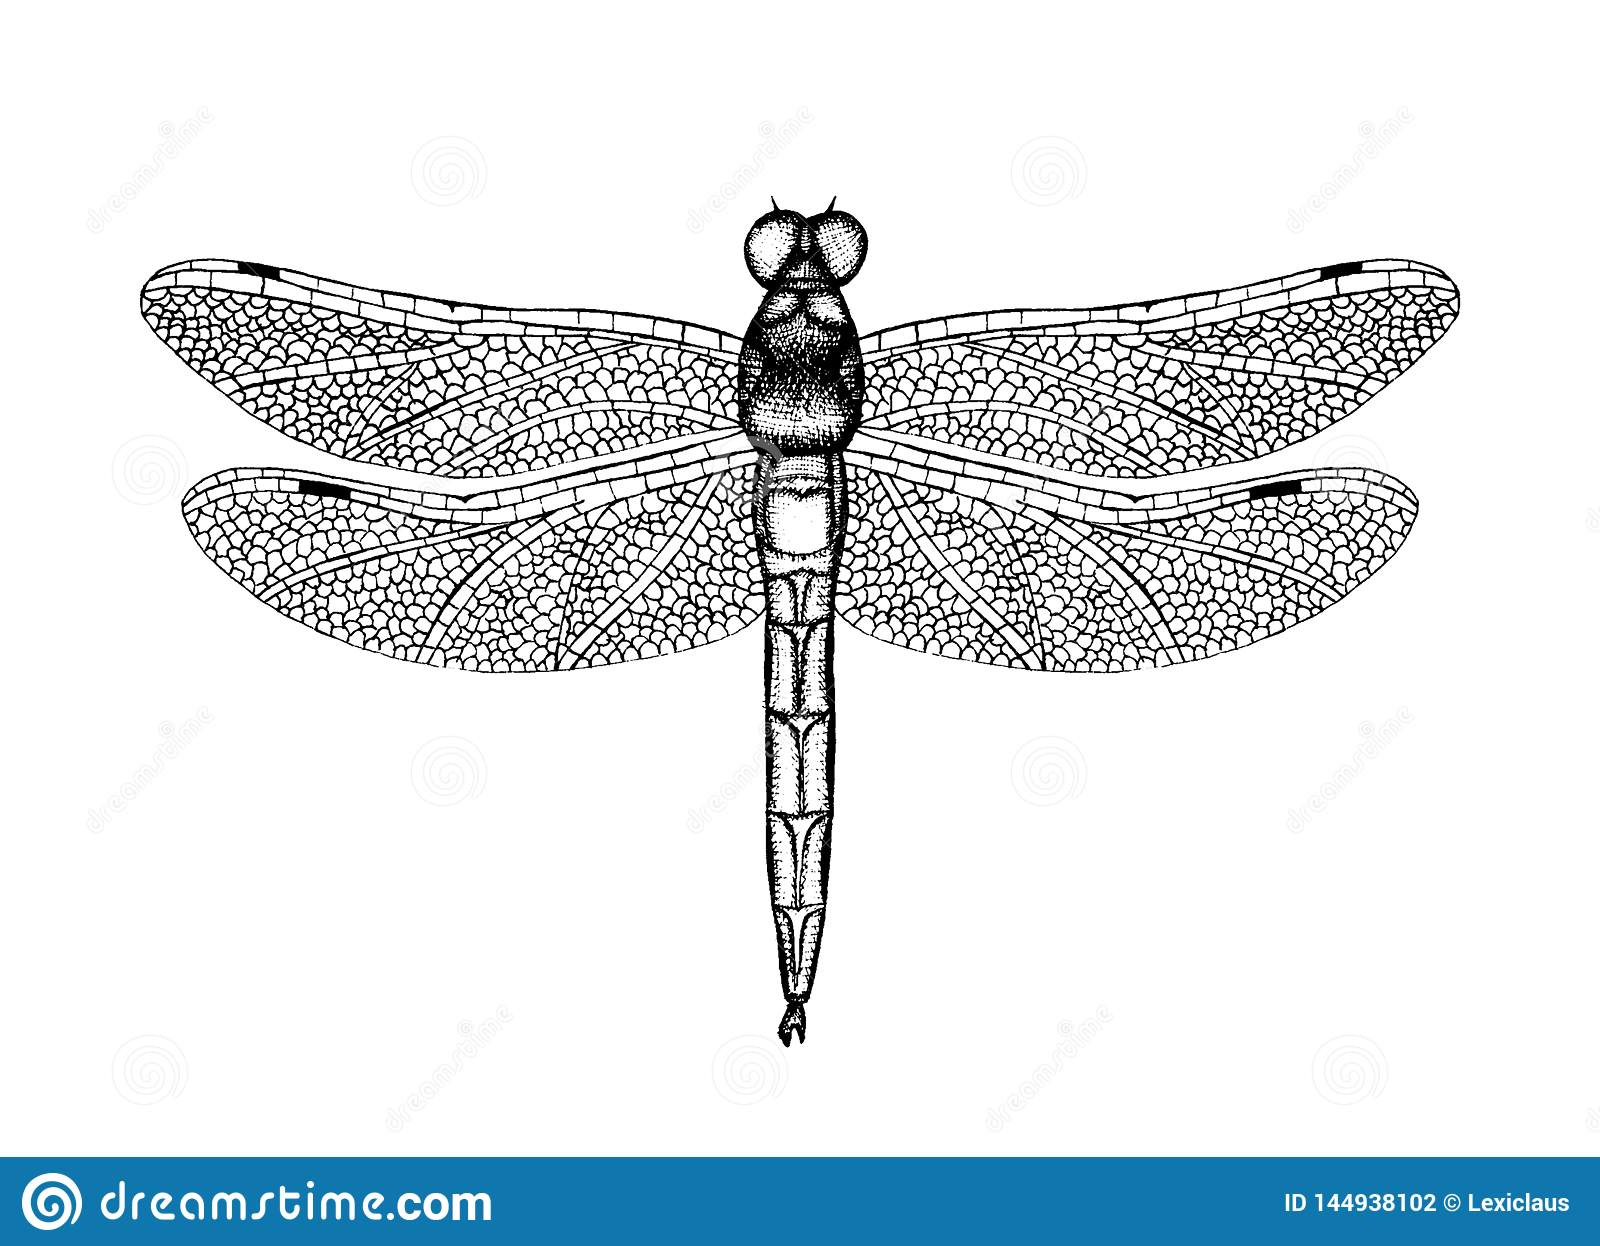 Black and white vector illustration of a dragonfly